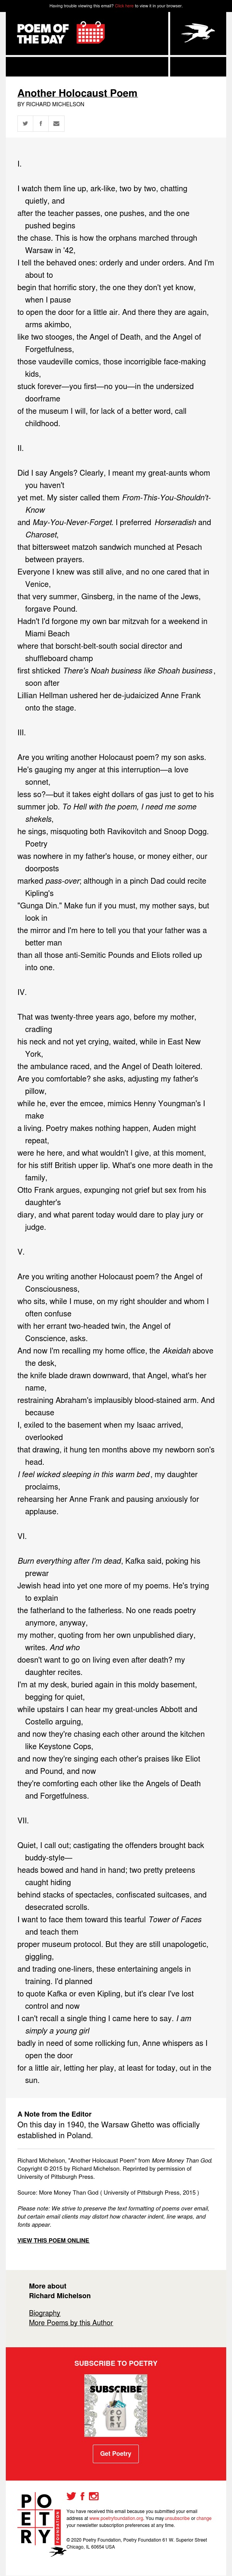 Poem of the Day: Another Holocaust Poem